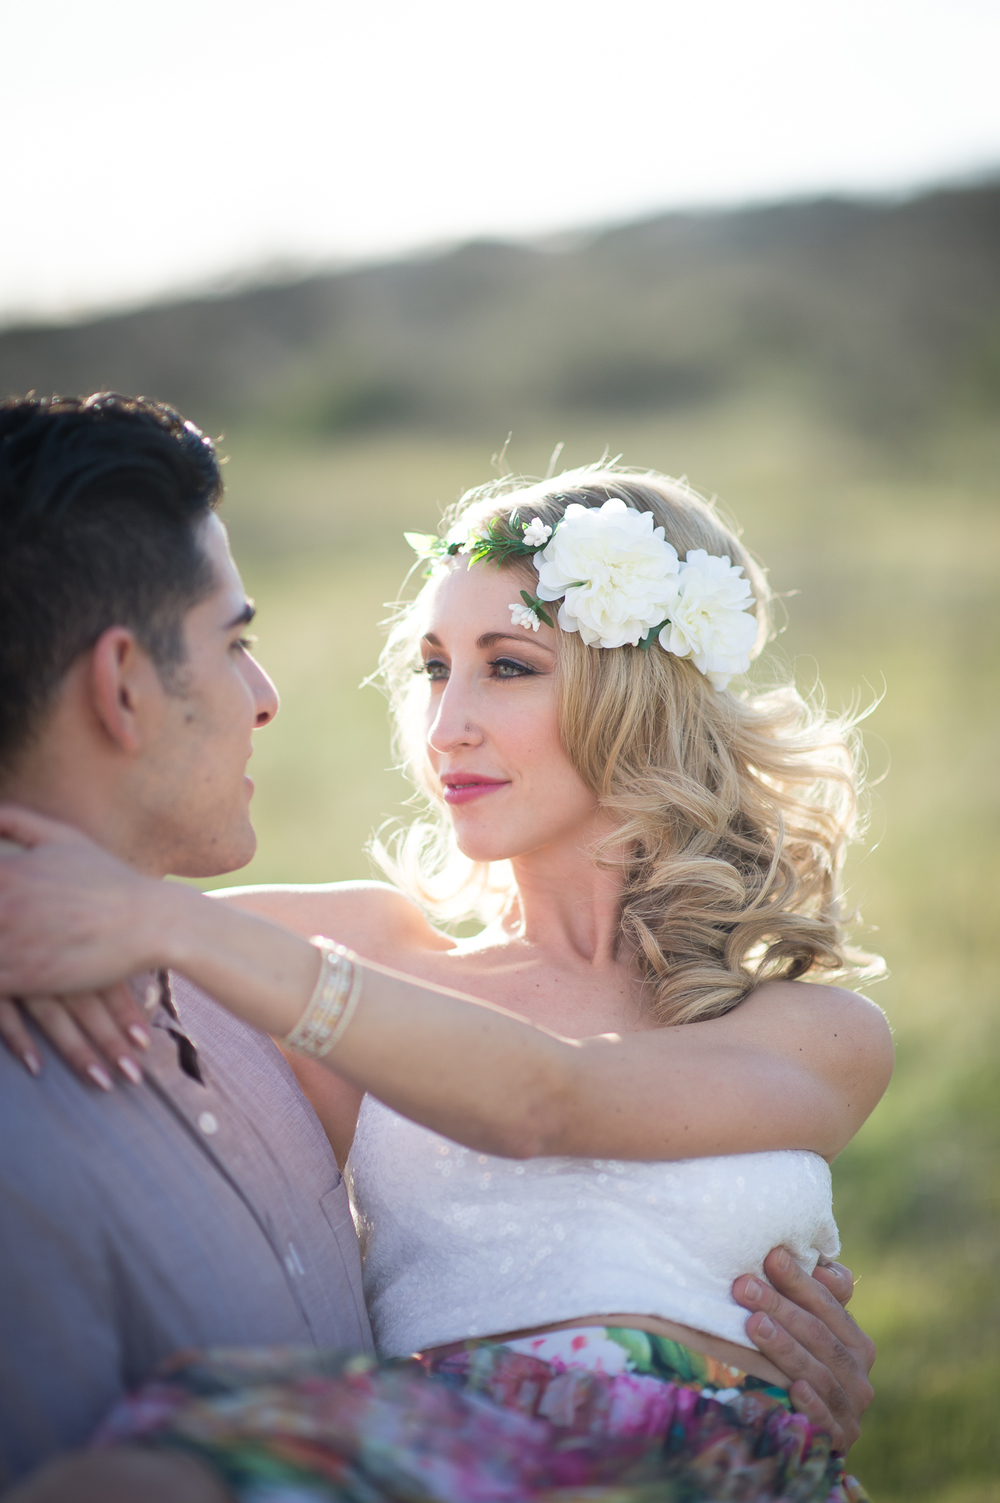 Galmore-engagement-flowercrown-inarms.jpg